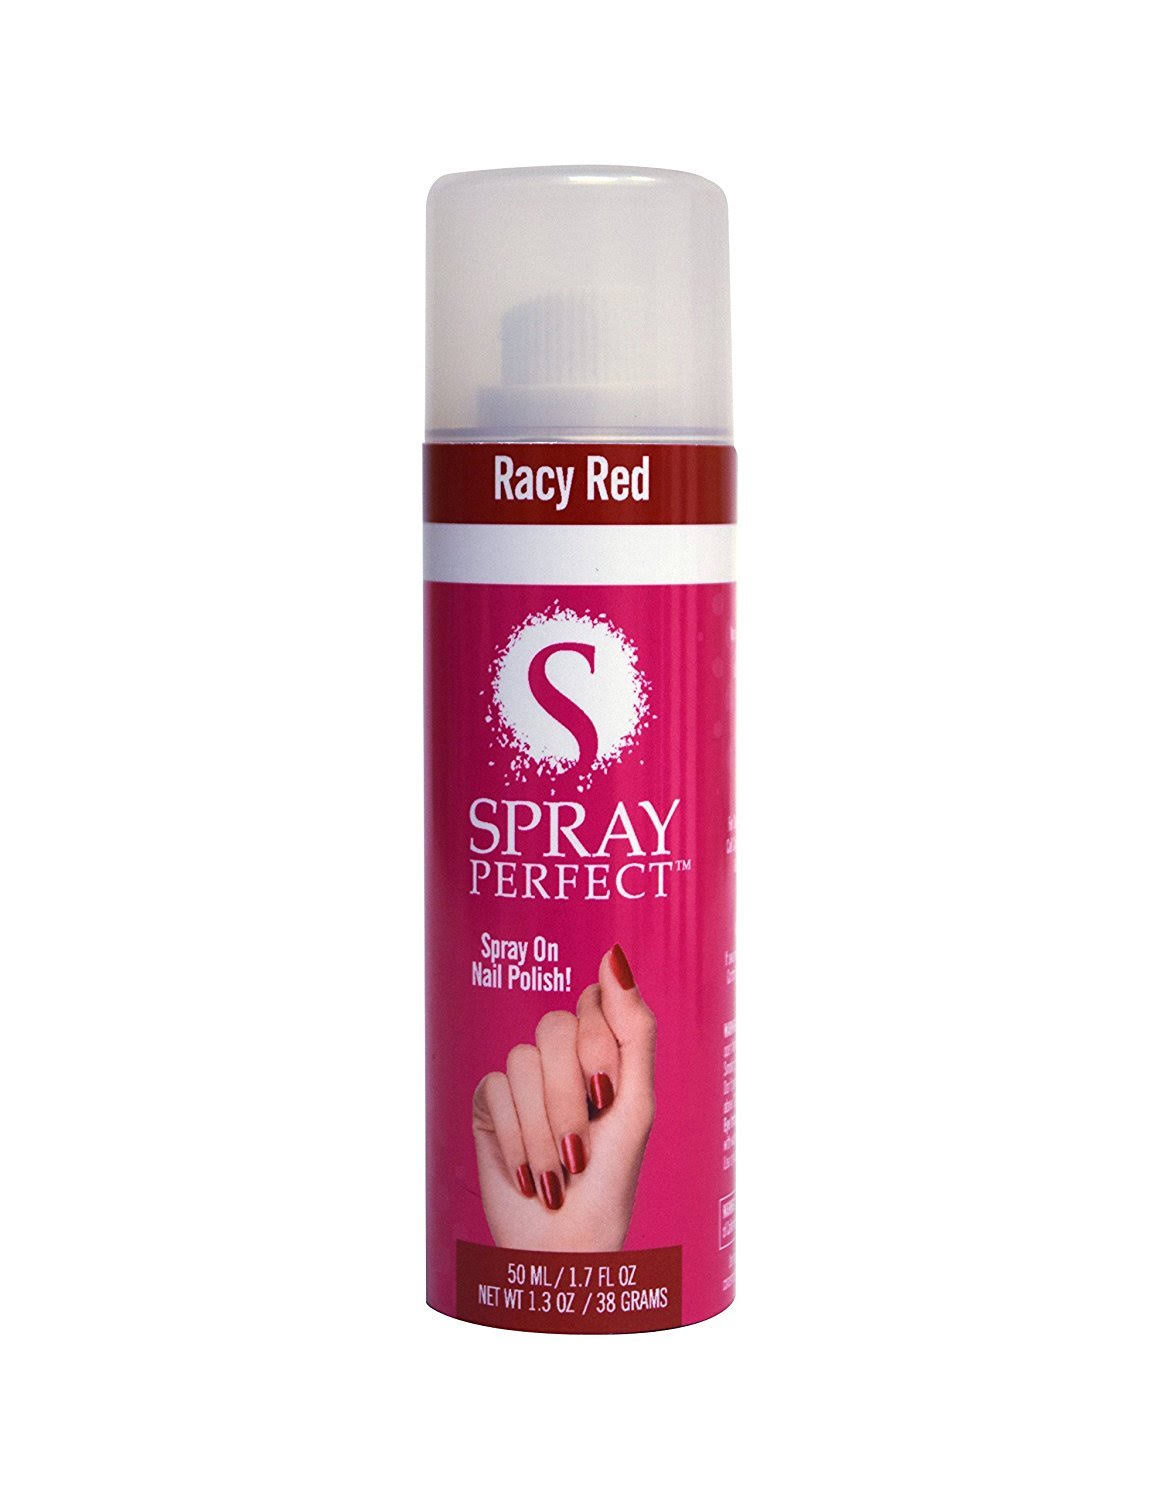 Spray Perfect Spray-On Nail Polish, 1.7 oz, Racy Red